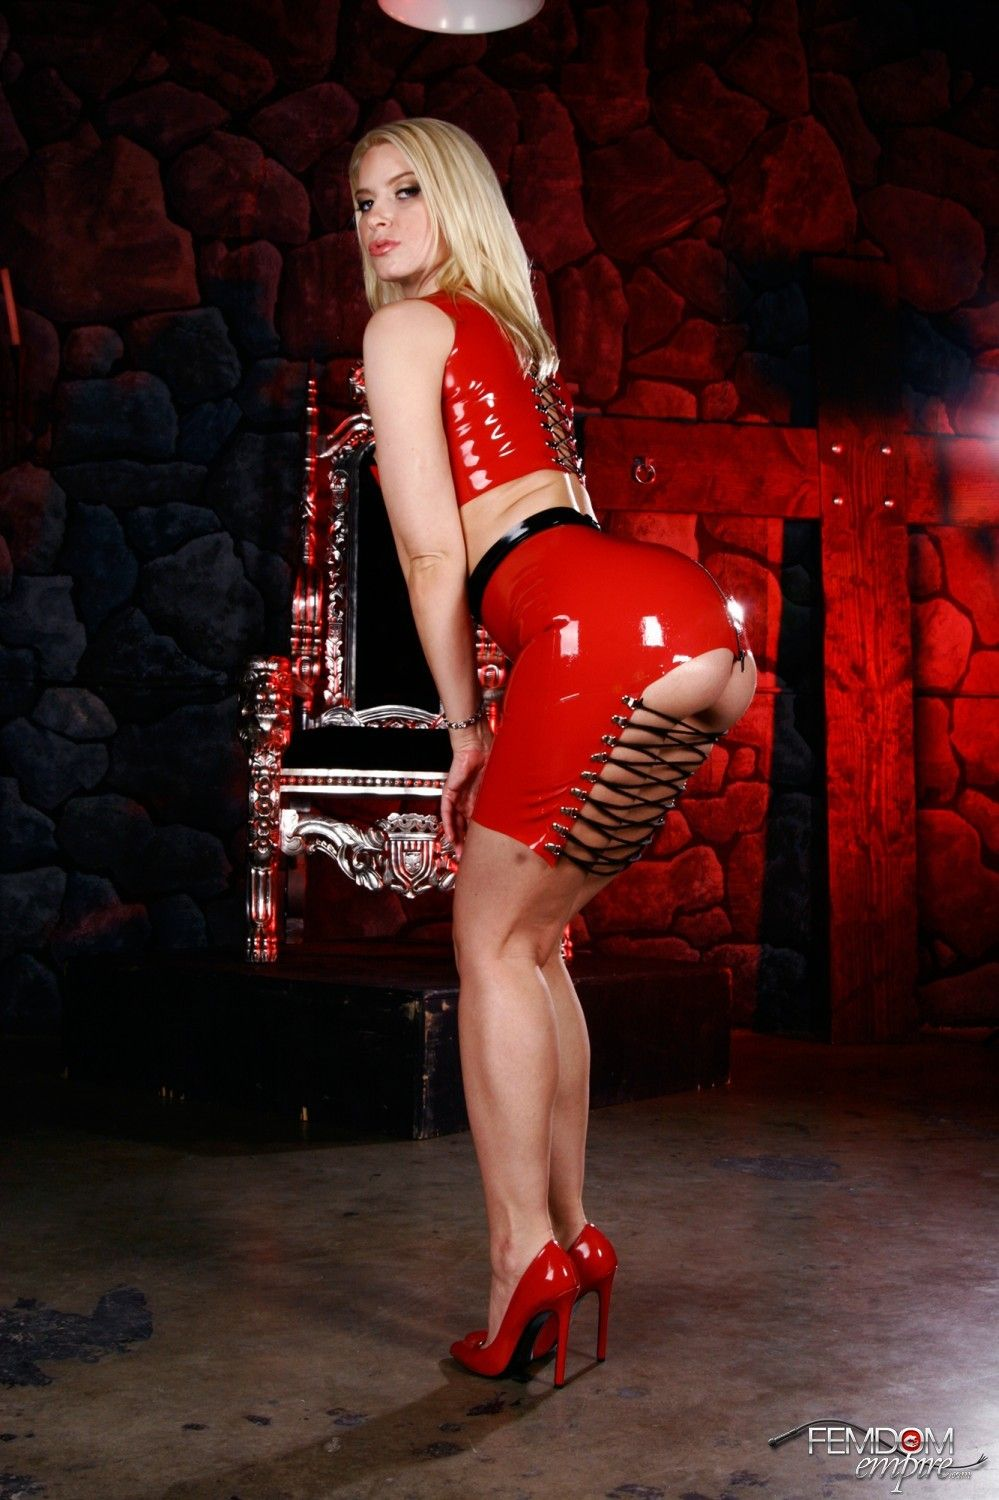 Pin By Frank Rodriguez On Latex Girls Heels Latex